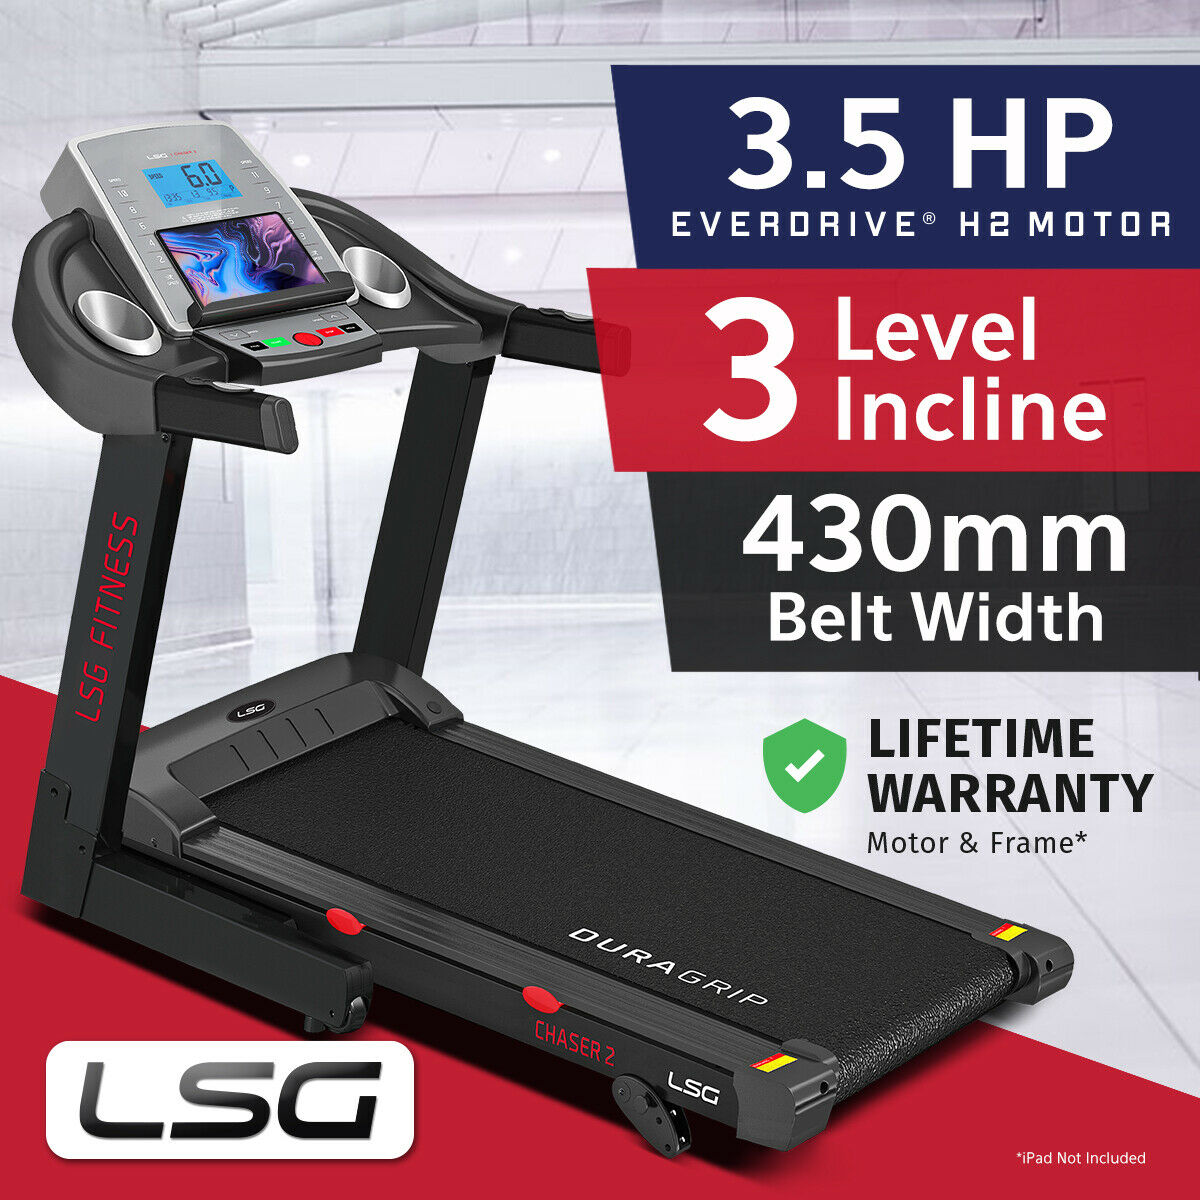 Lifespan Fitness New Electric Treadmill Quiet Everdrive Motor W Repair Short Circuit 1 Of 11 See More